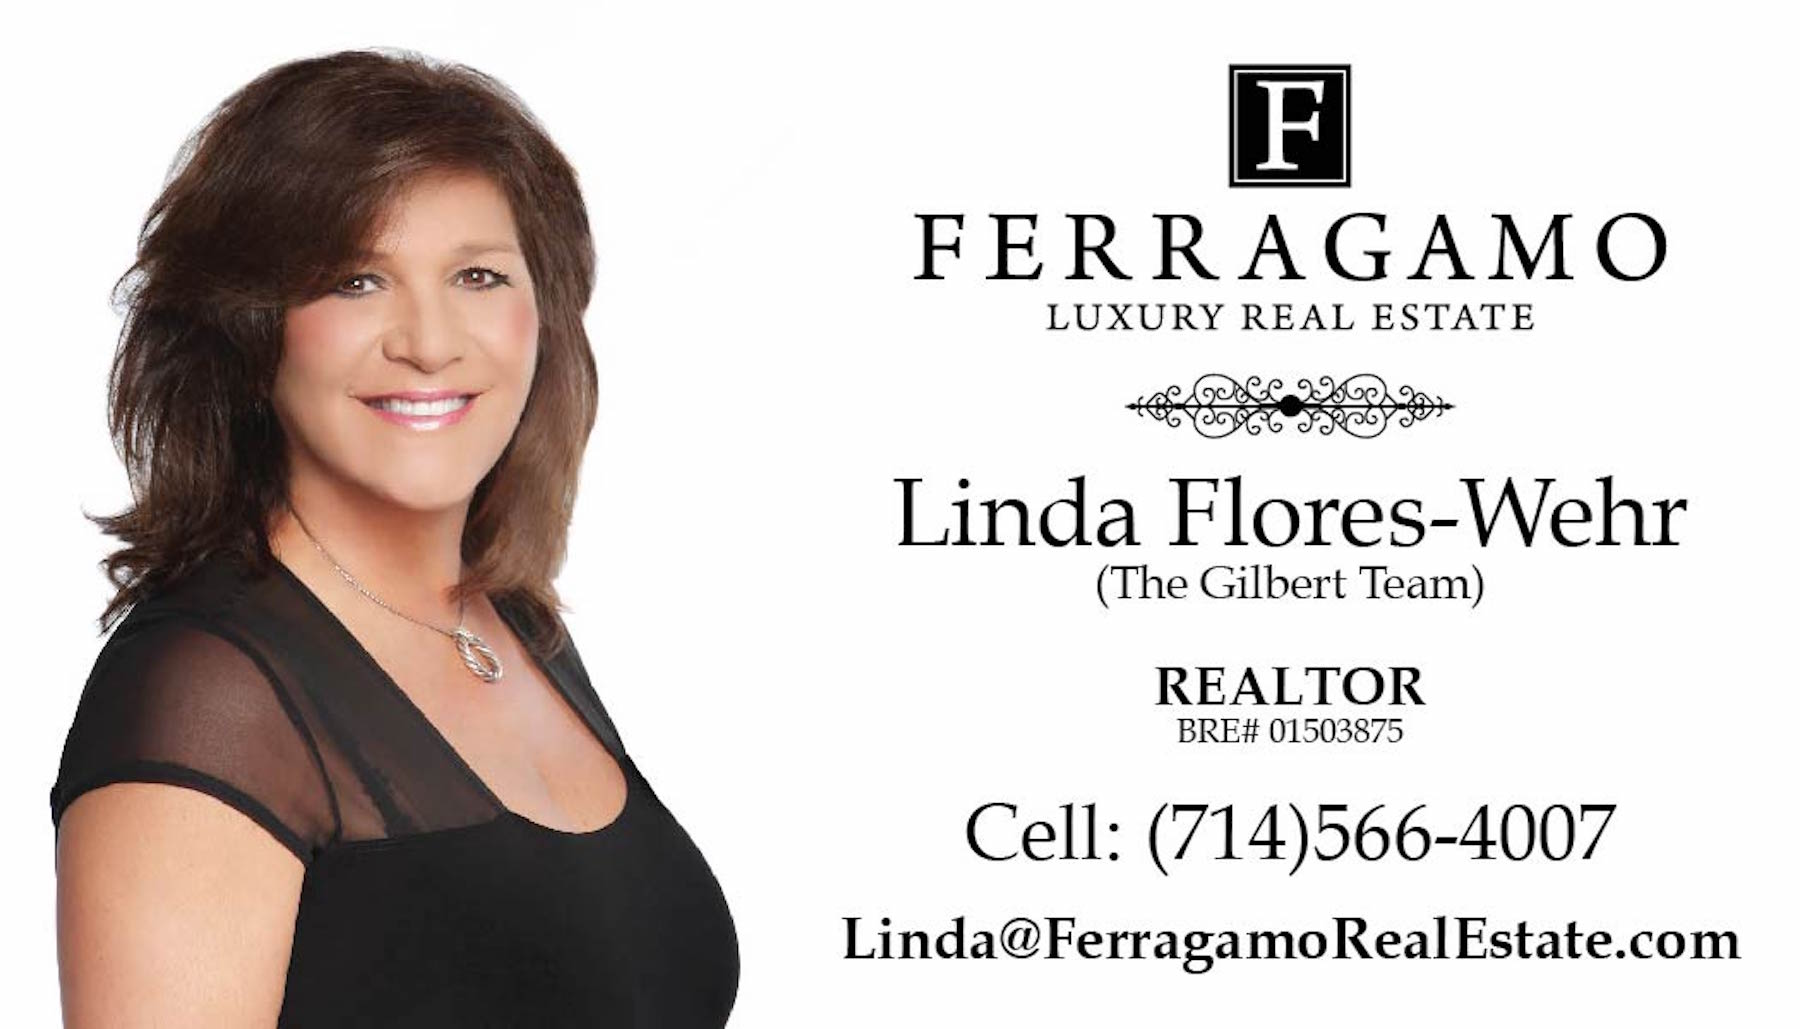 Contact Linda Flores-Wehr for your  Real Estate  needs